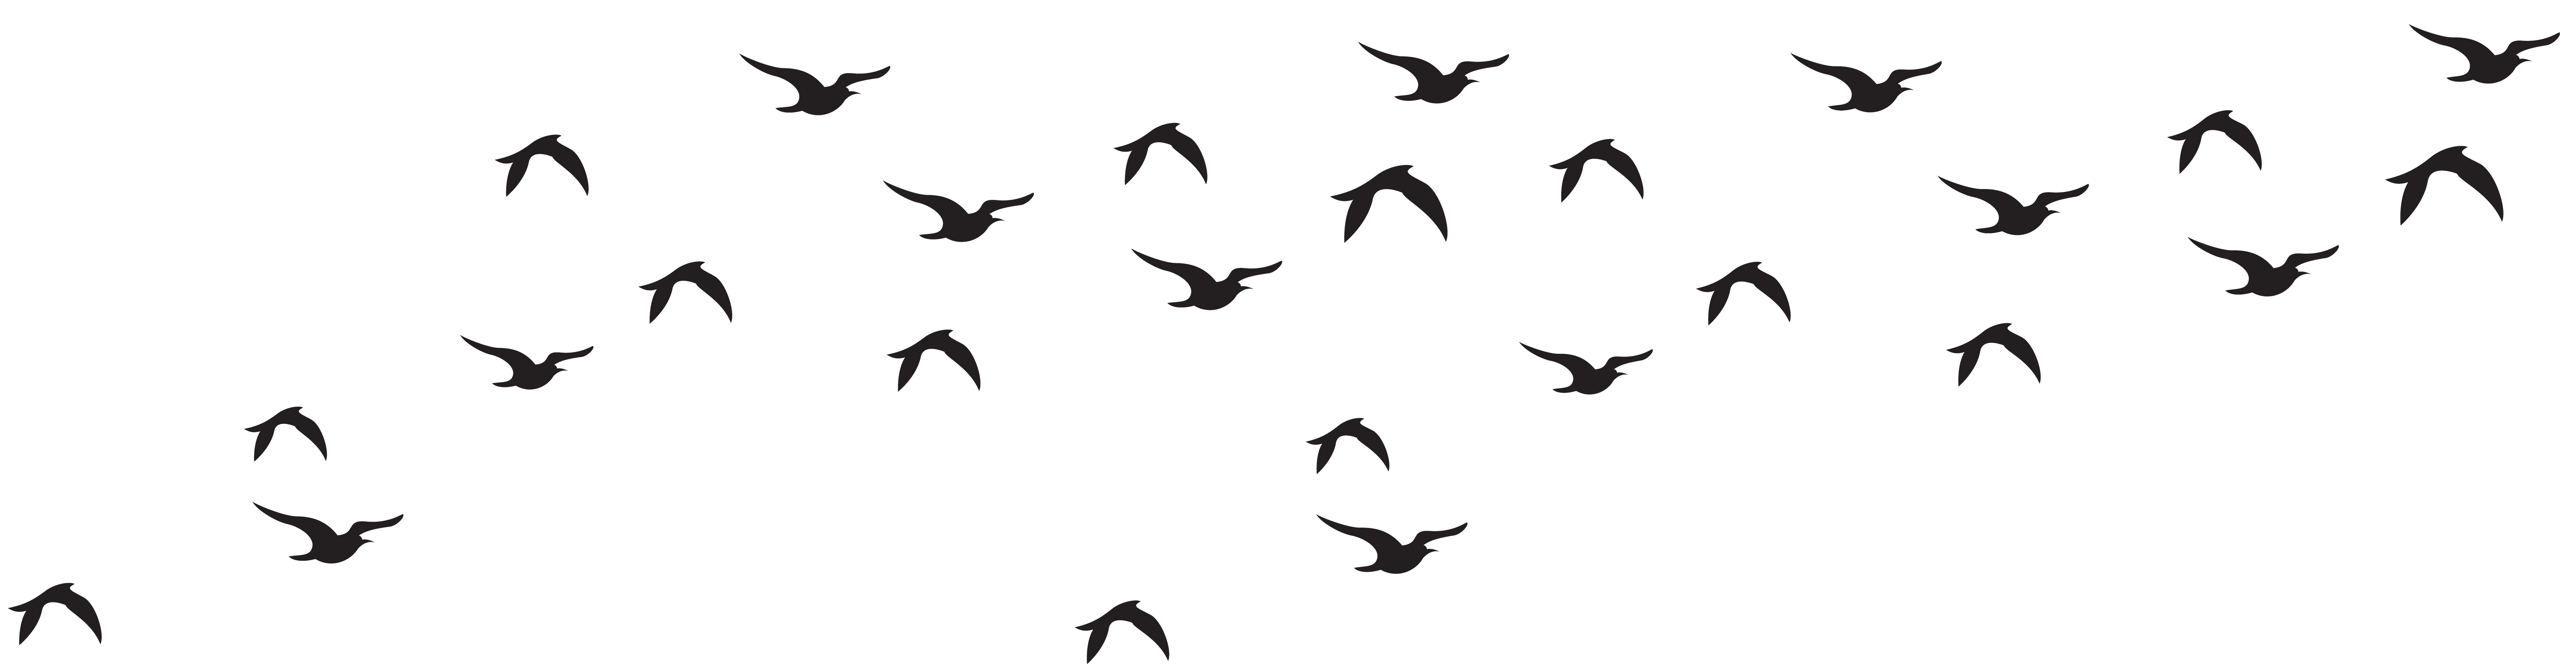 Flock Of Birds clipart Of photo#25 Birds Flock Flock